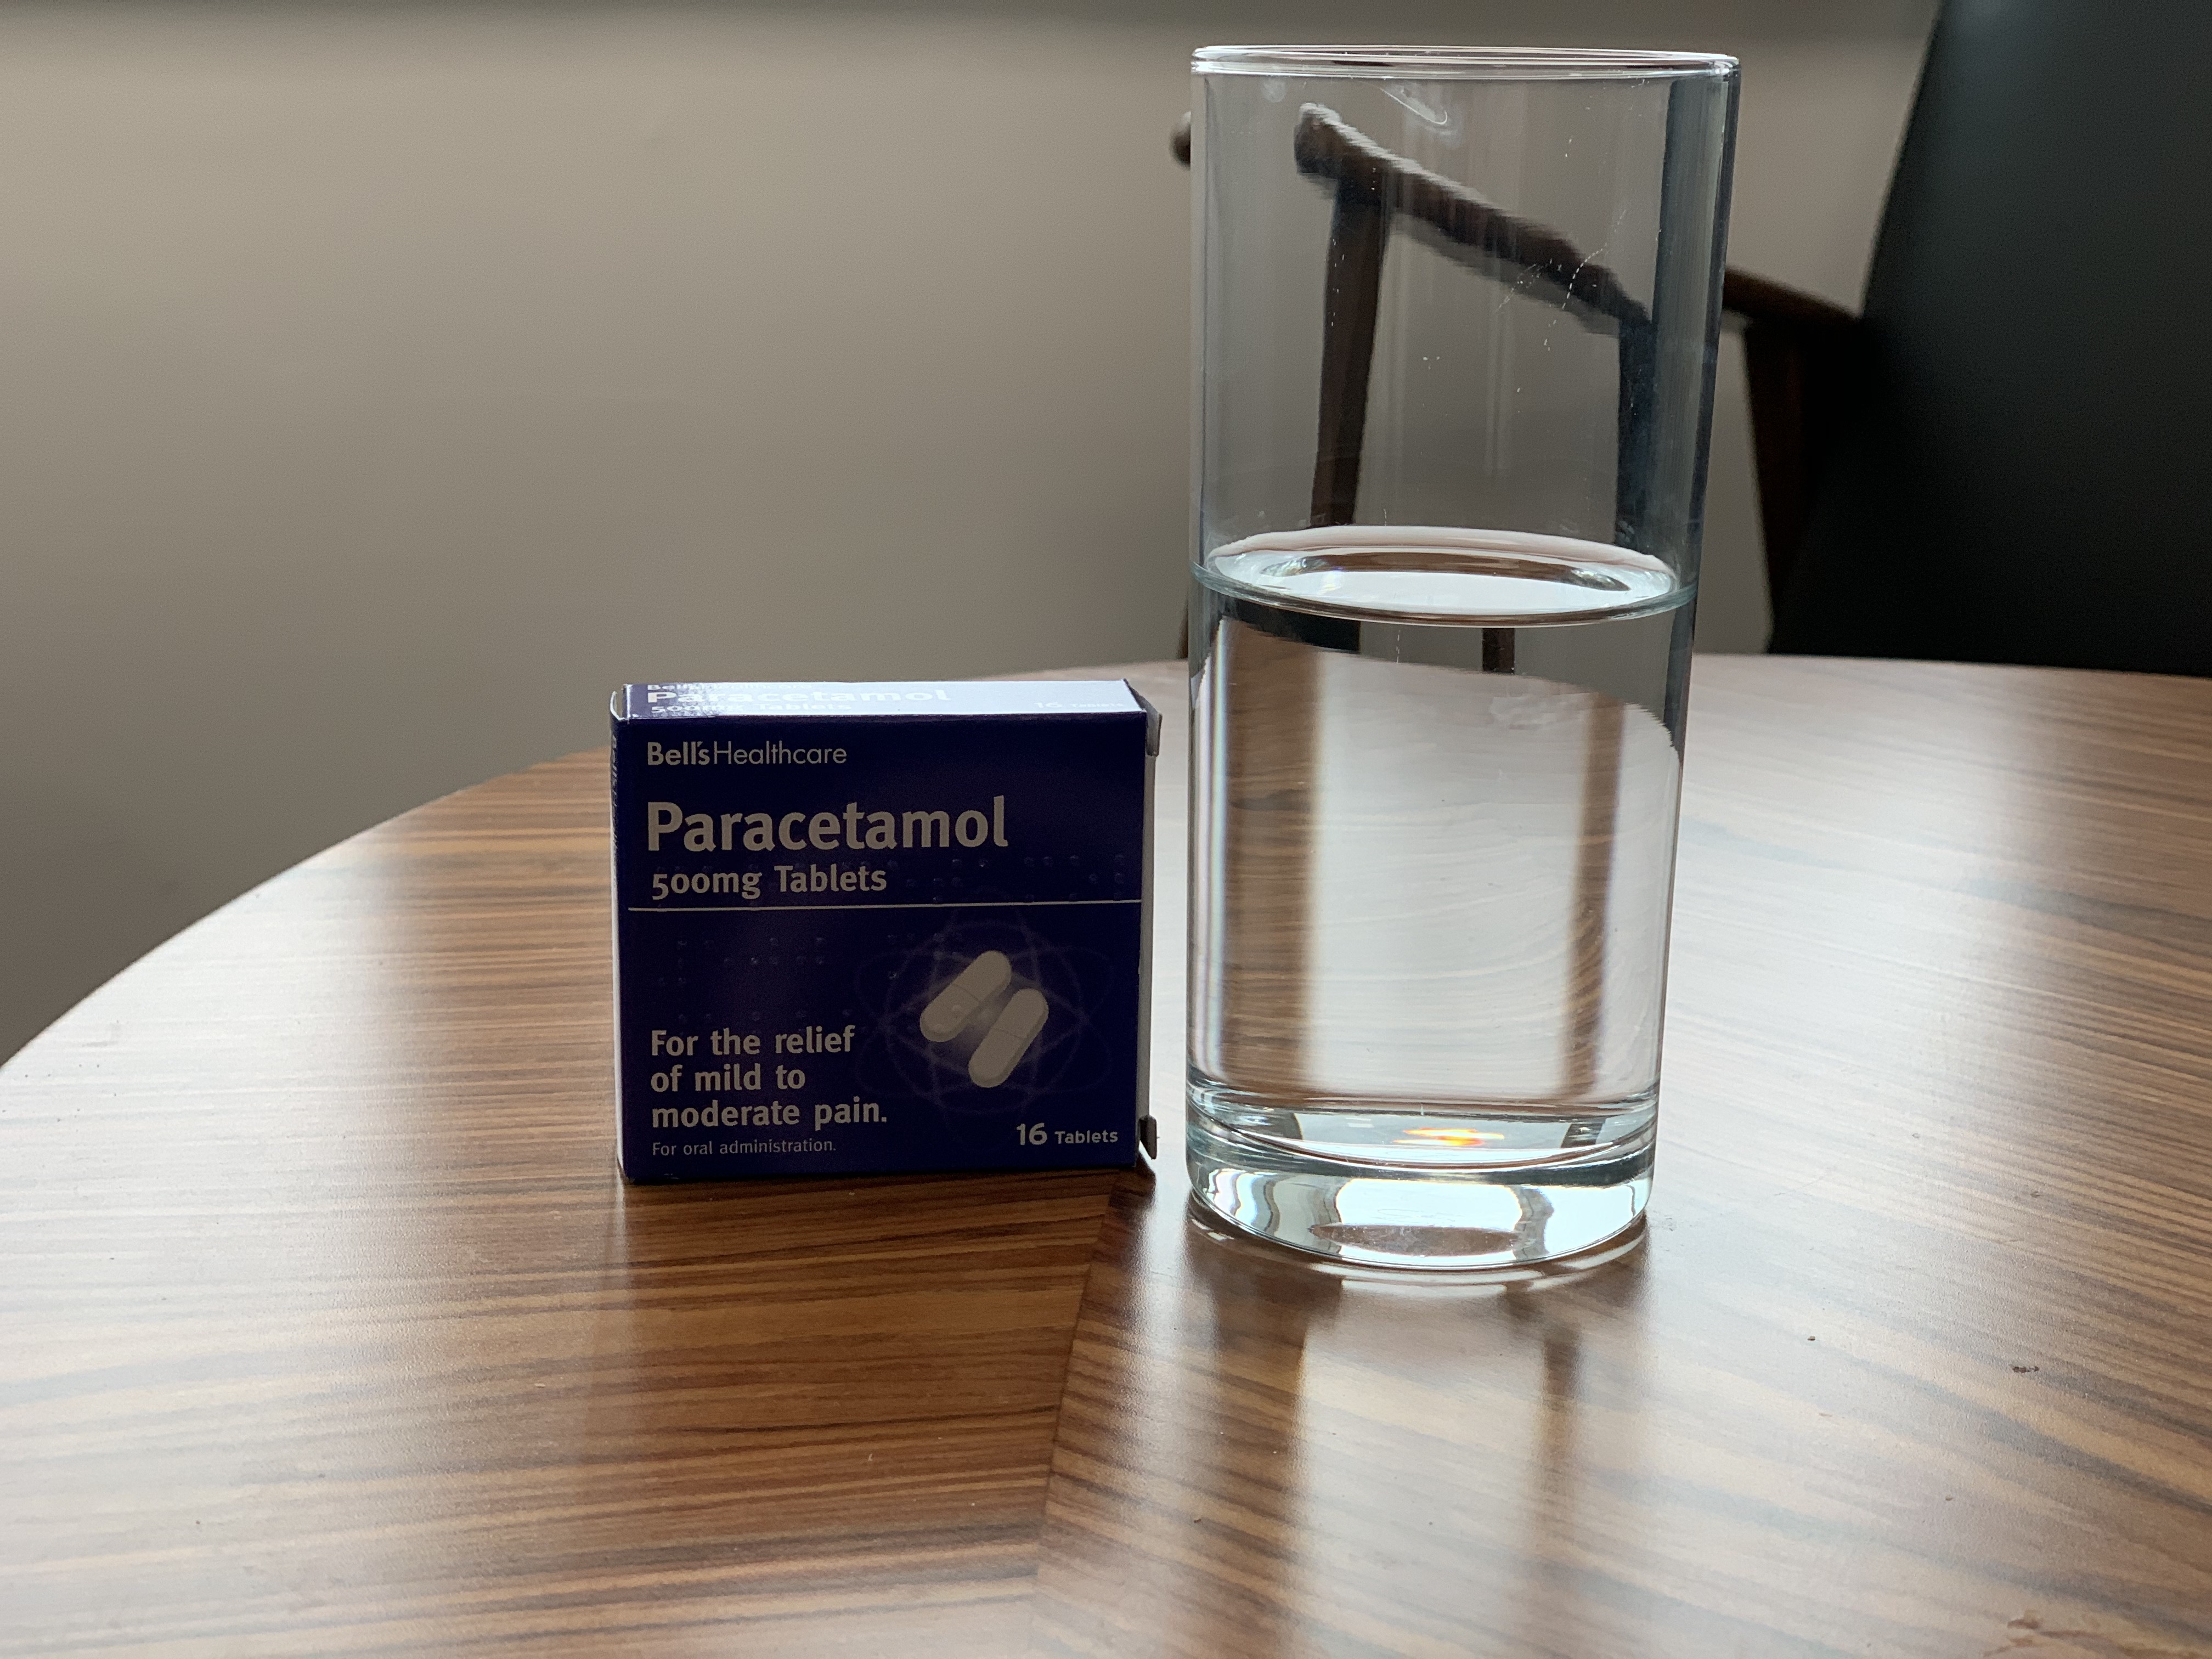 Does taking paracetamol during pregnancy result in ADHD?